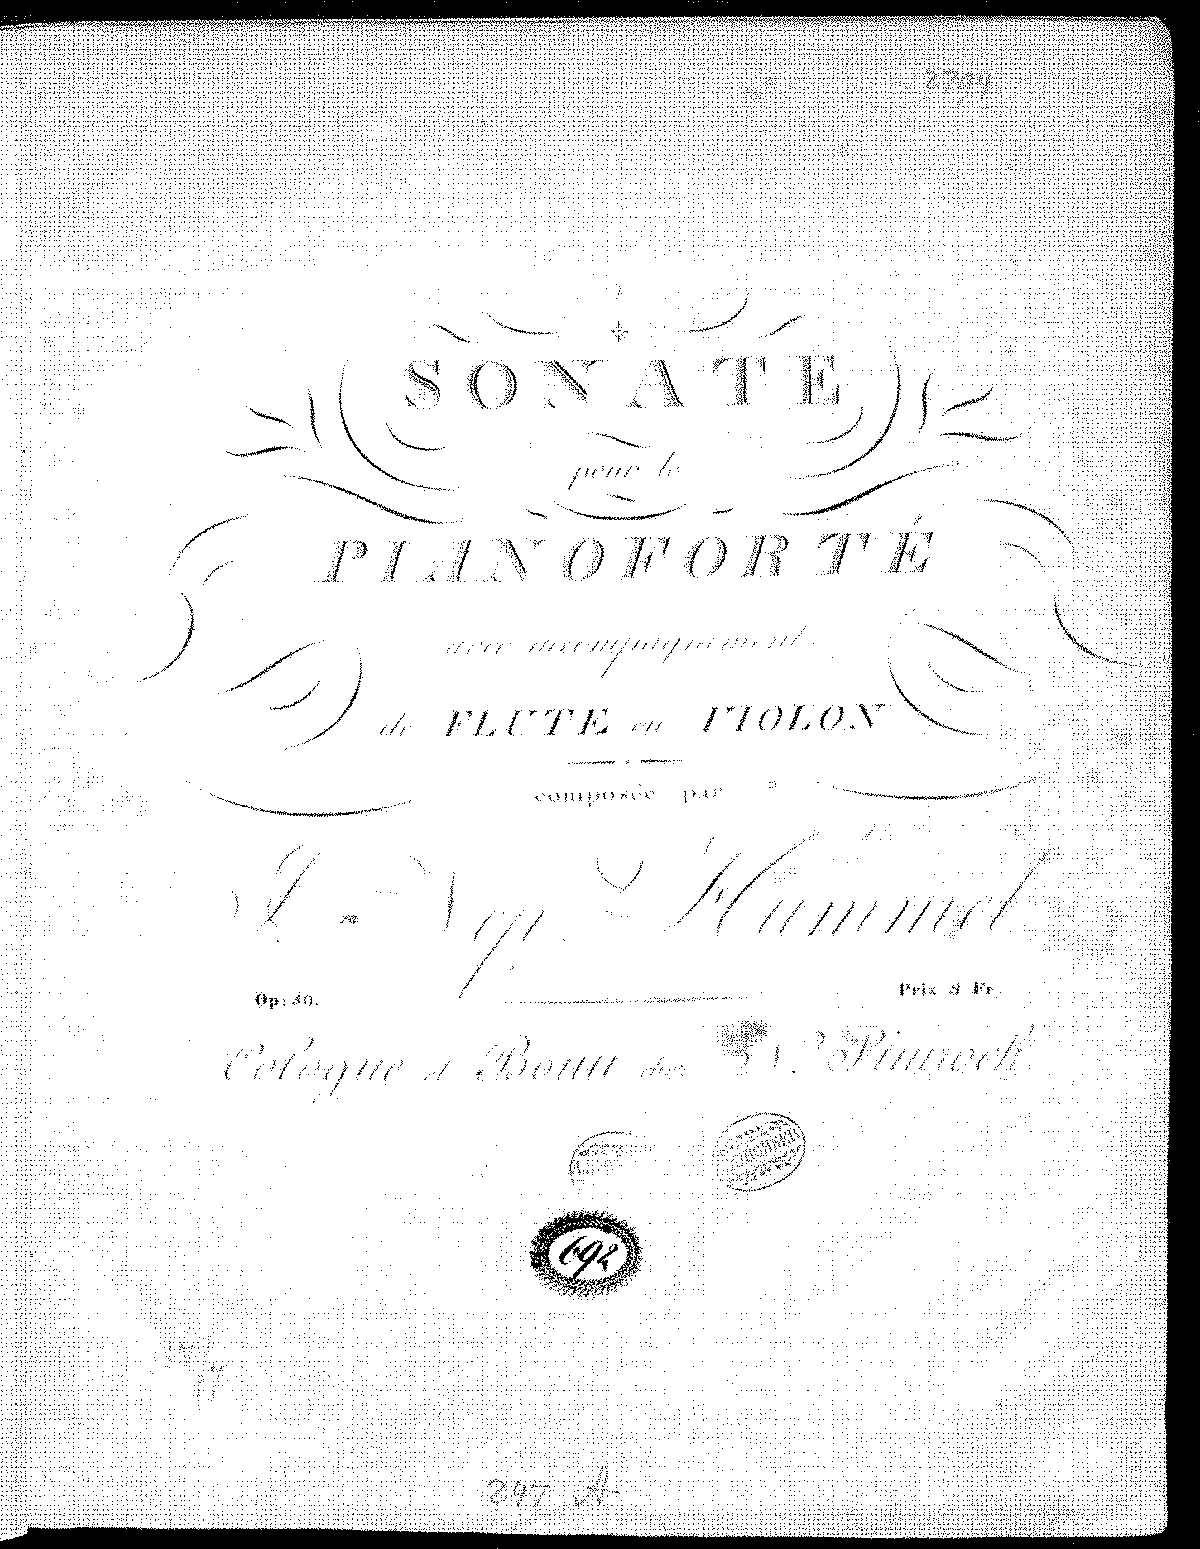 PMLP50497-Hummel - 050 - Sonata for flute or violin and piano.pdf